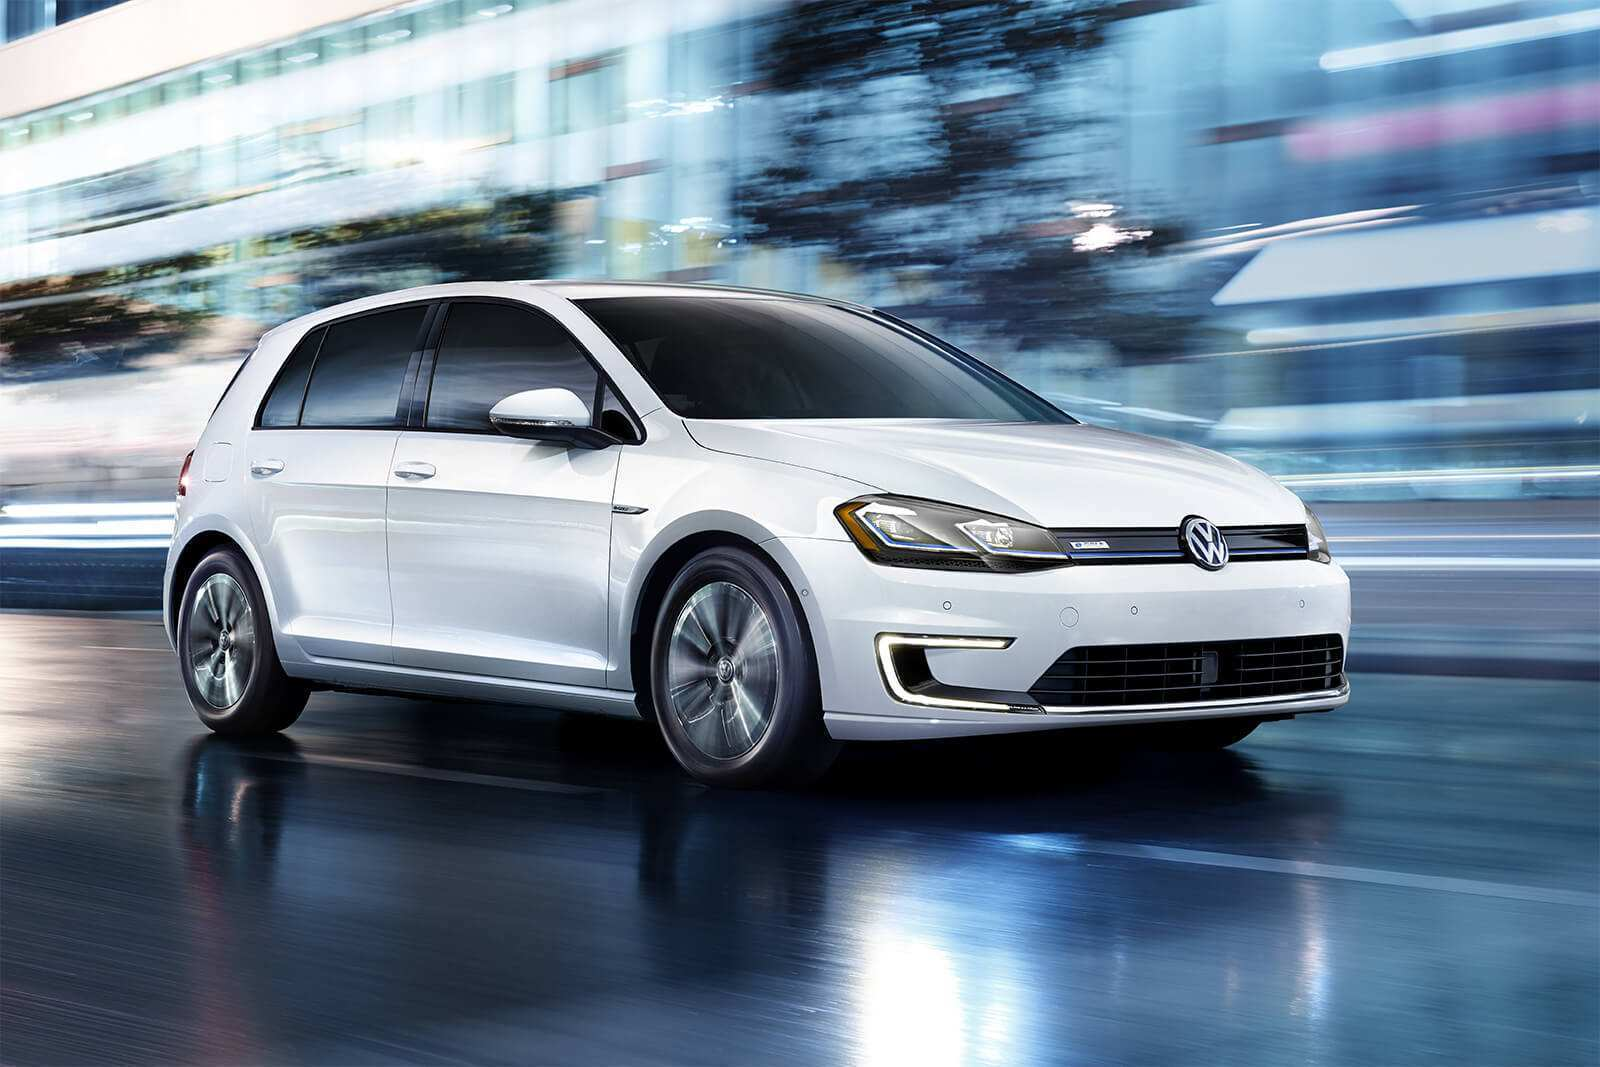 82 Concept of 2019 Vw E Golf Picture for 2019 Vw E Golf